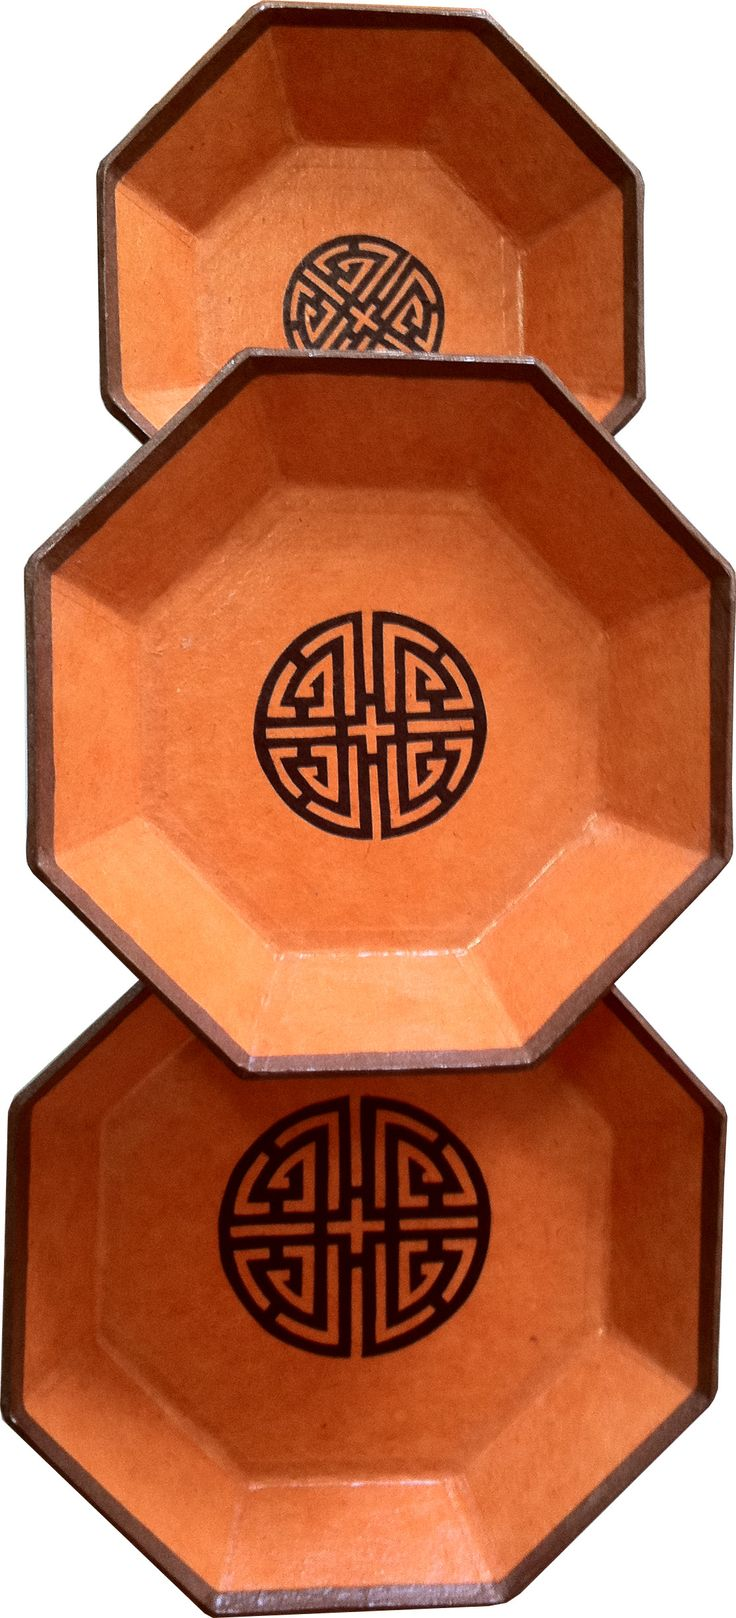 A set of handmade Hanji trays that can be used for simple display or to serve dry snacks. http://www.hanjiartandcraft.com/hanji-tray-set/